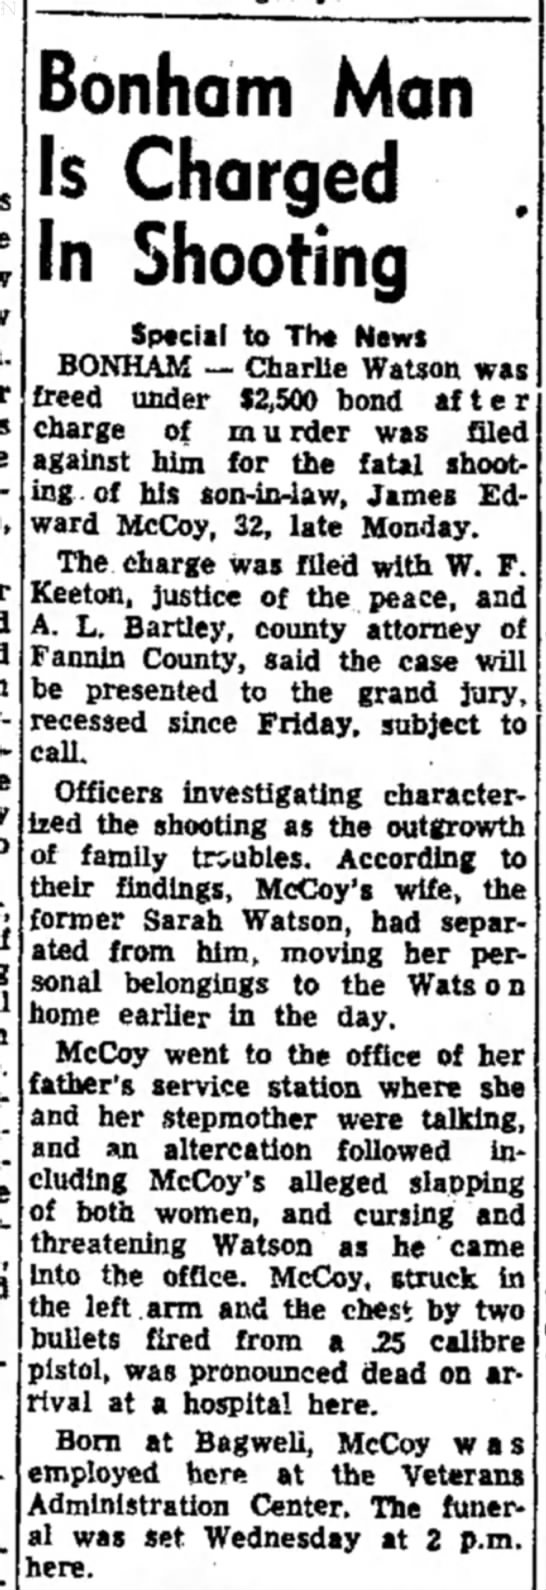 The Paris News (Paris TX) Jan 20, 1954, Charlie Watson shoots son in law -